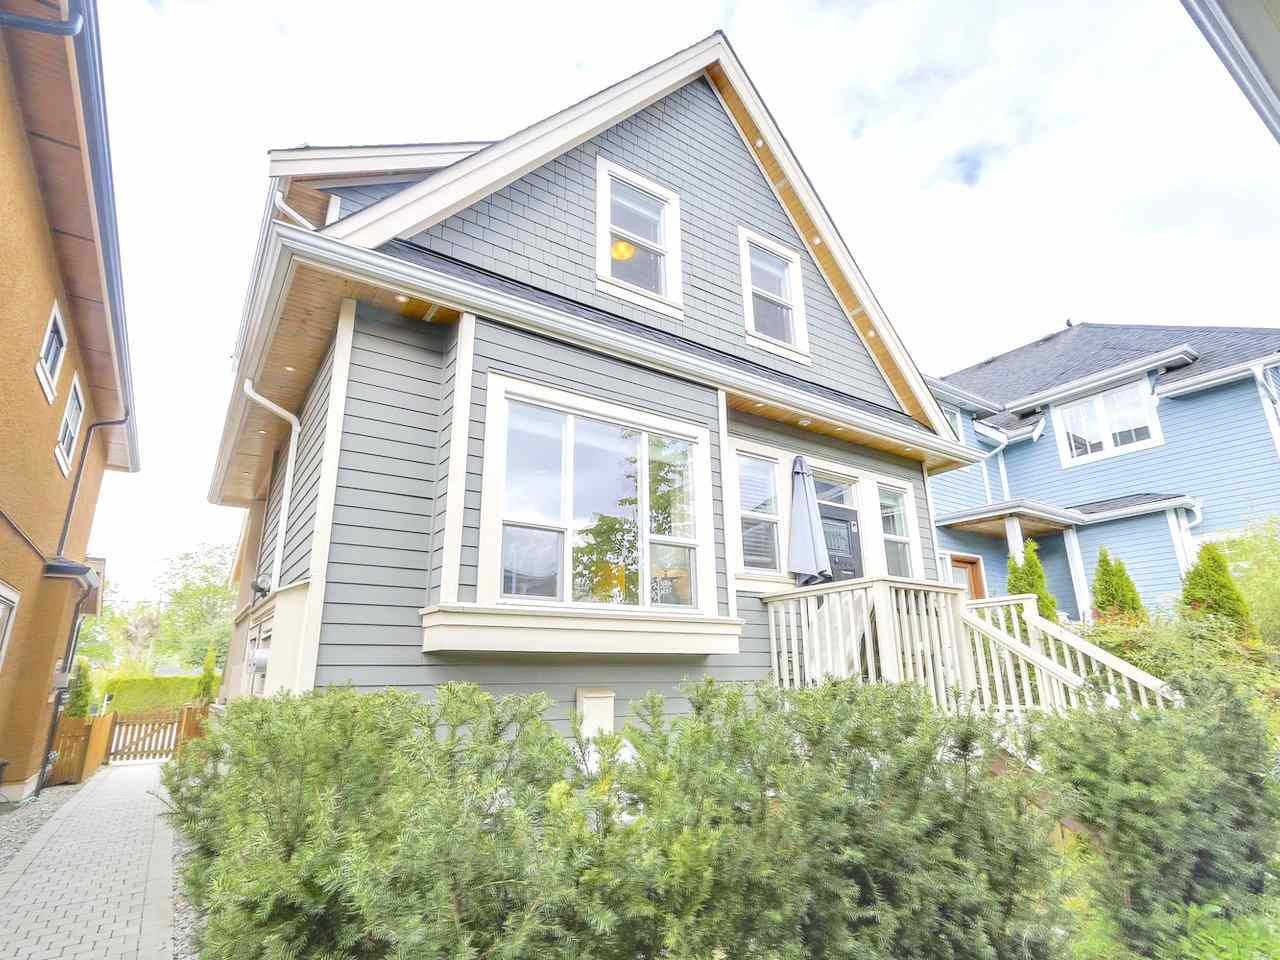 Main Photo: 1180 E KING EDWARD Avenue in Vancouver: Knight House 1/2 Duplex for sale (Vancouver East)  : MLS®# R2310356